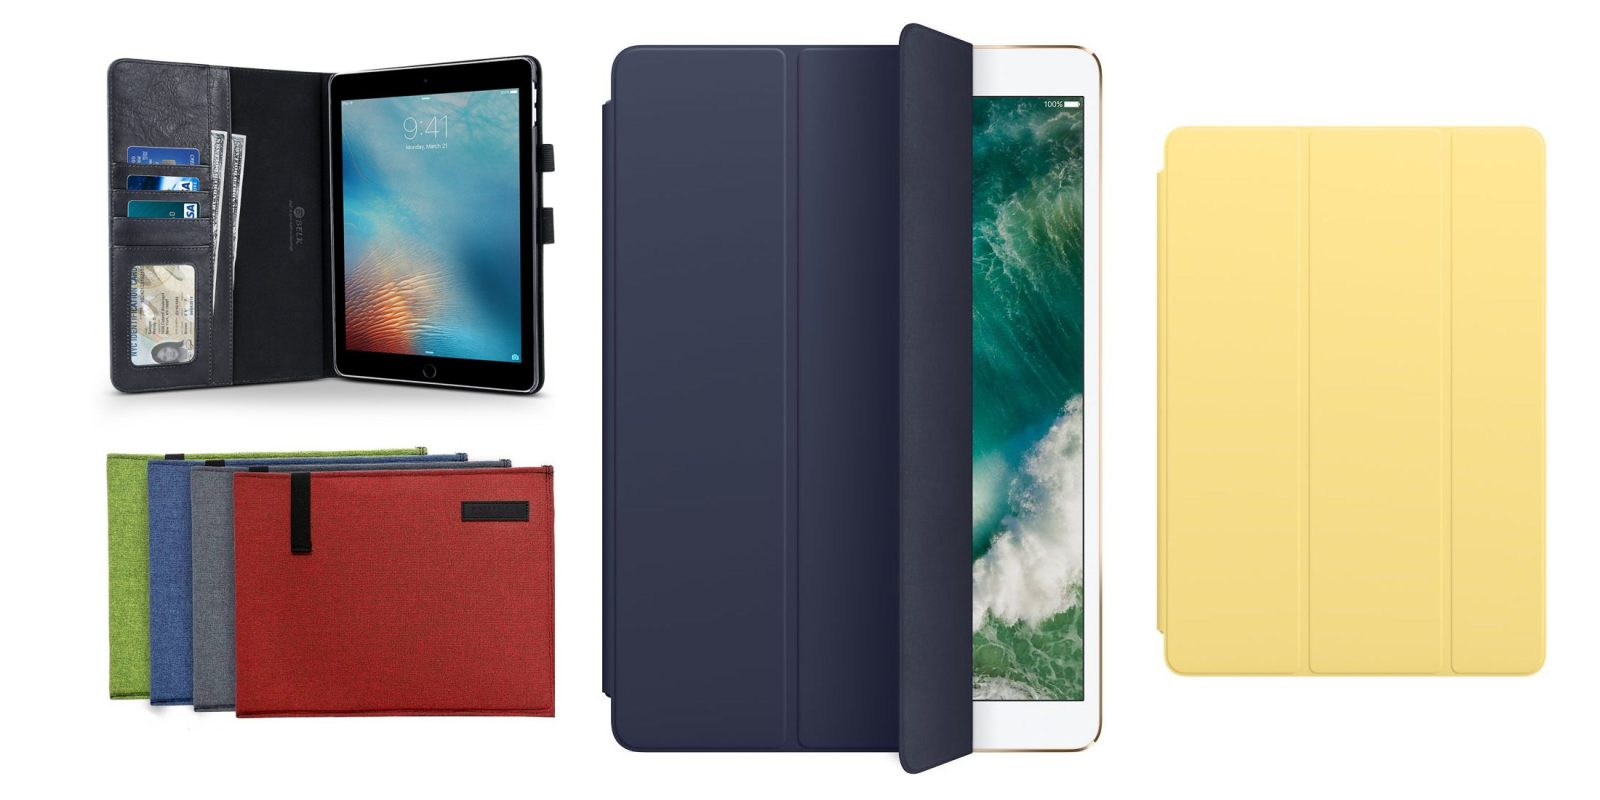 the best cases for apples new 105 inch ipad pro